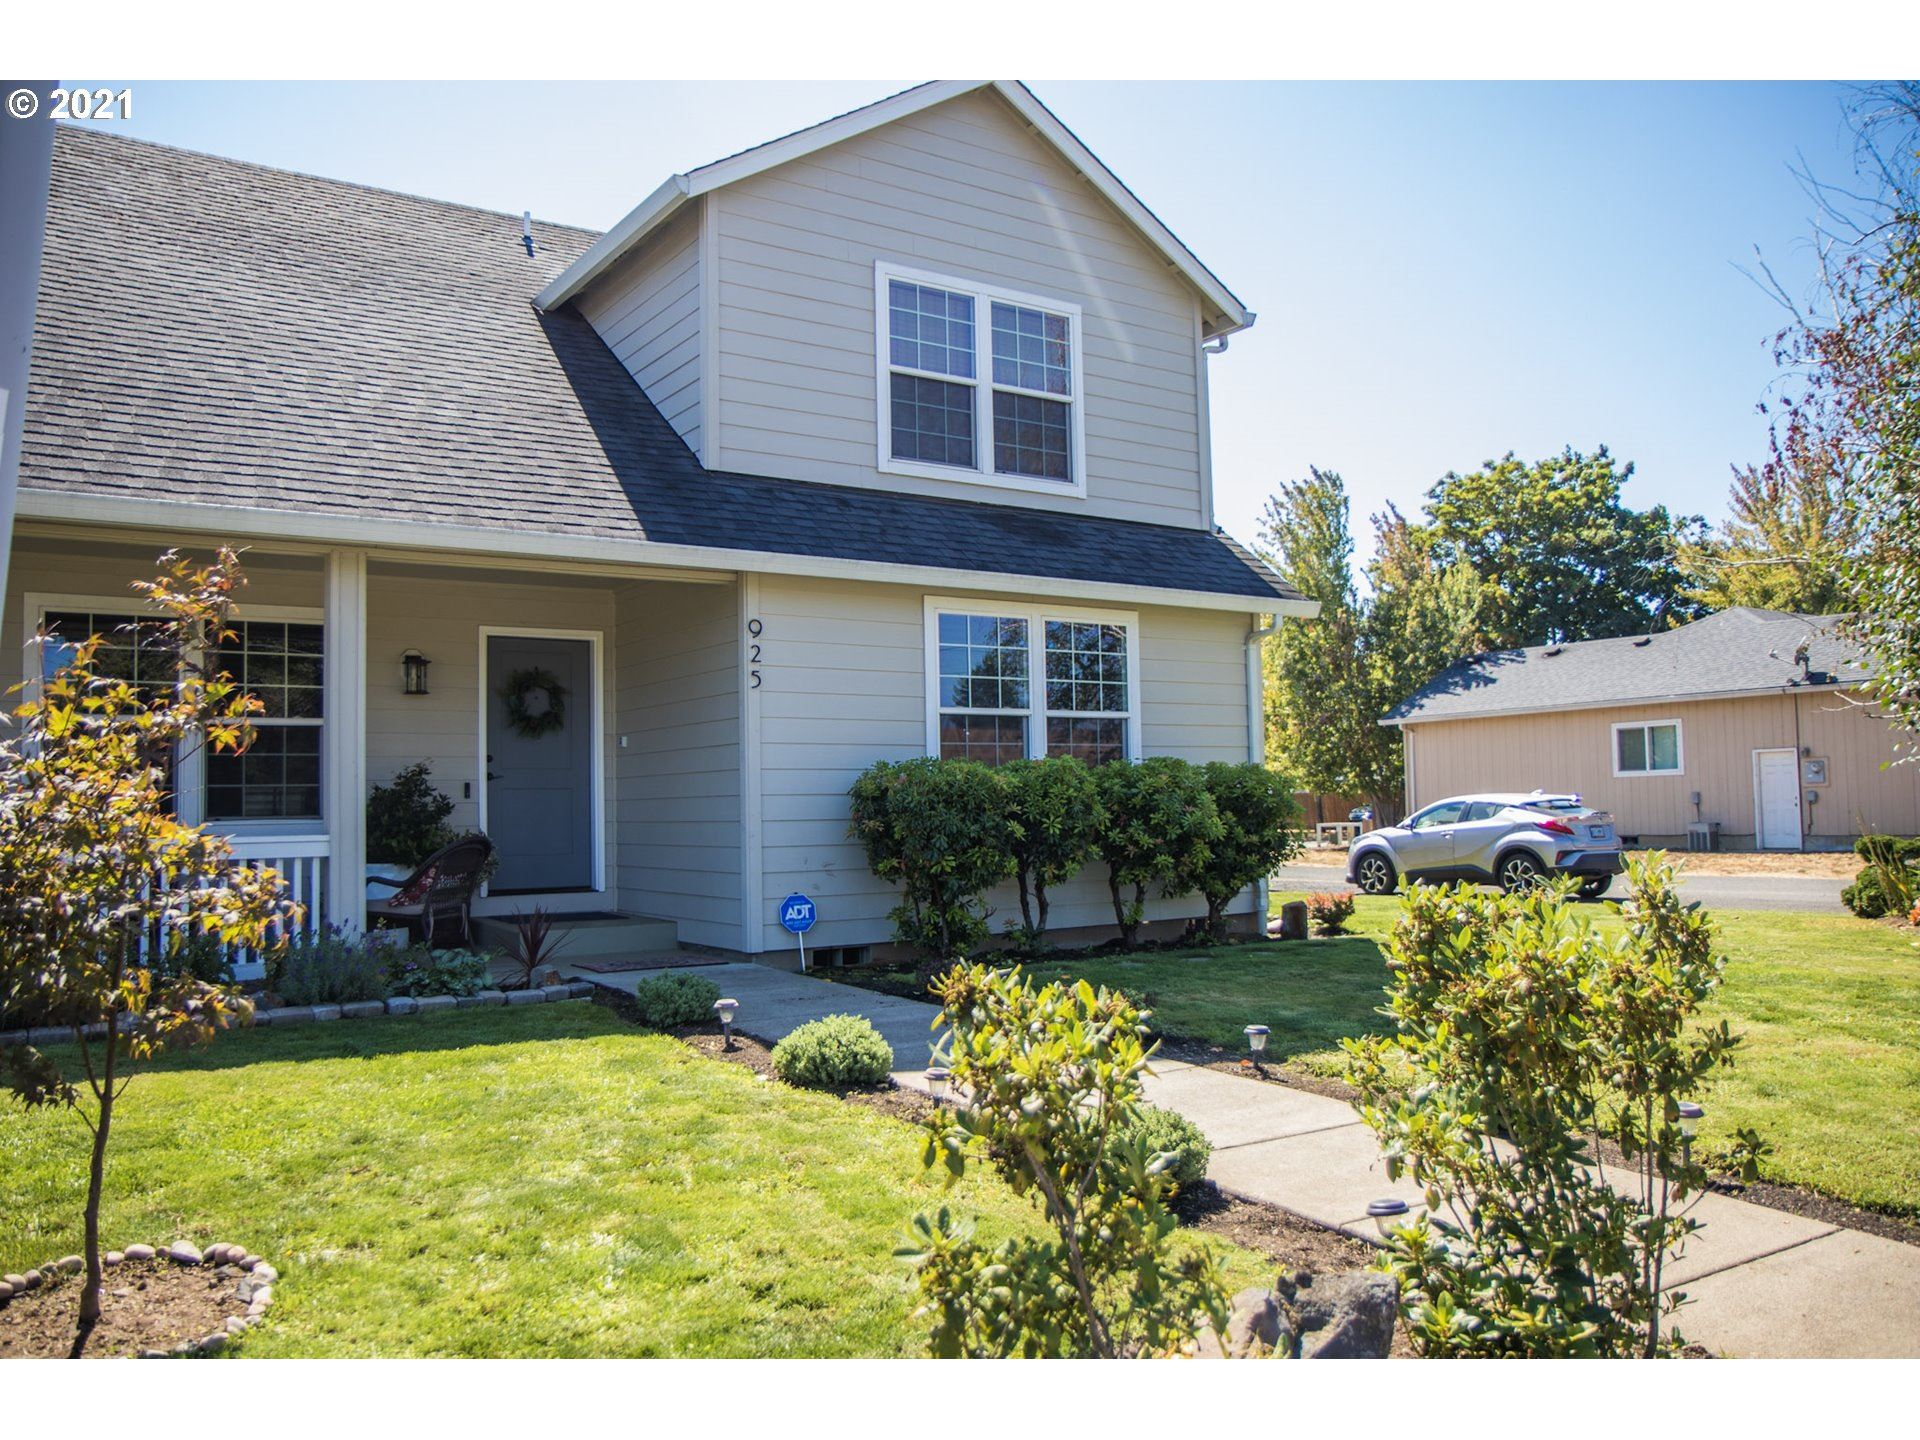 Photo for 925 W OREGON AVE, Creswell, OR 97426 (MLS # 21629698)